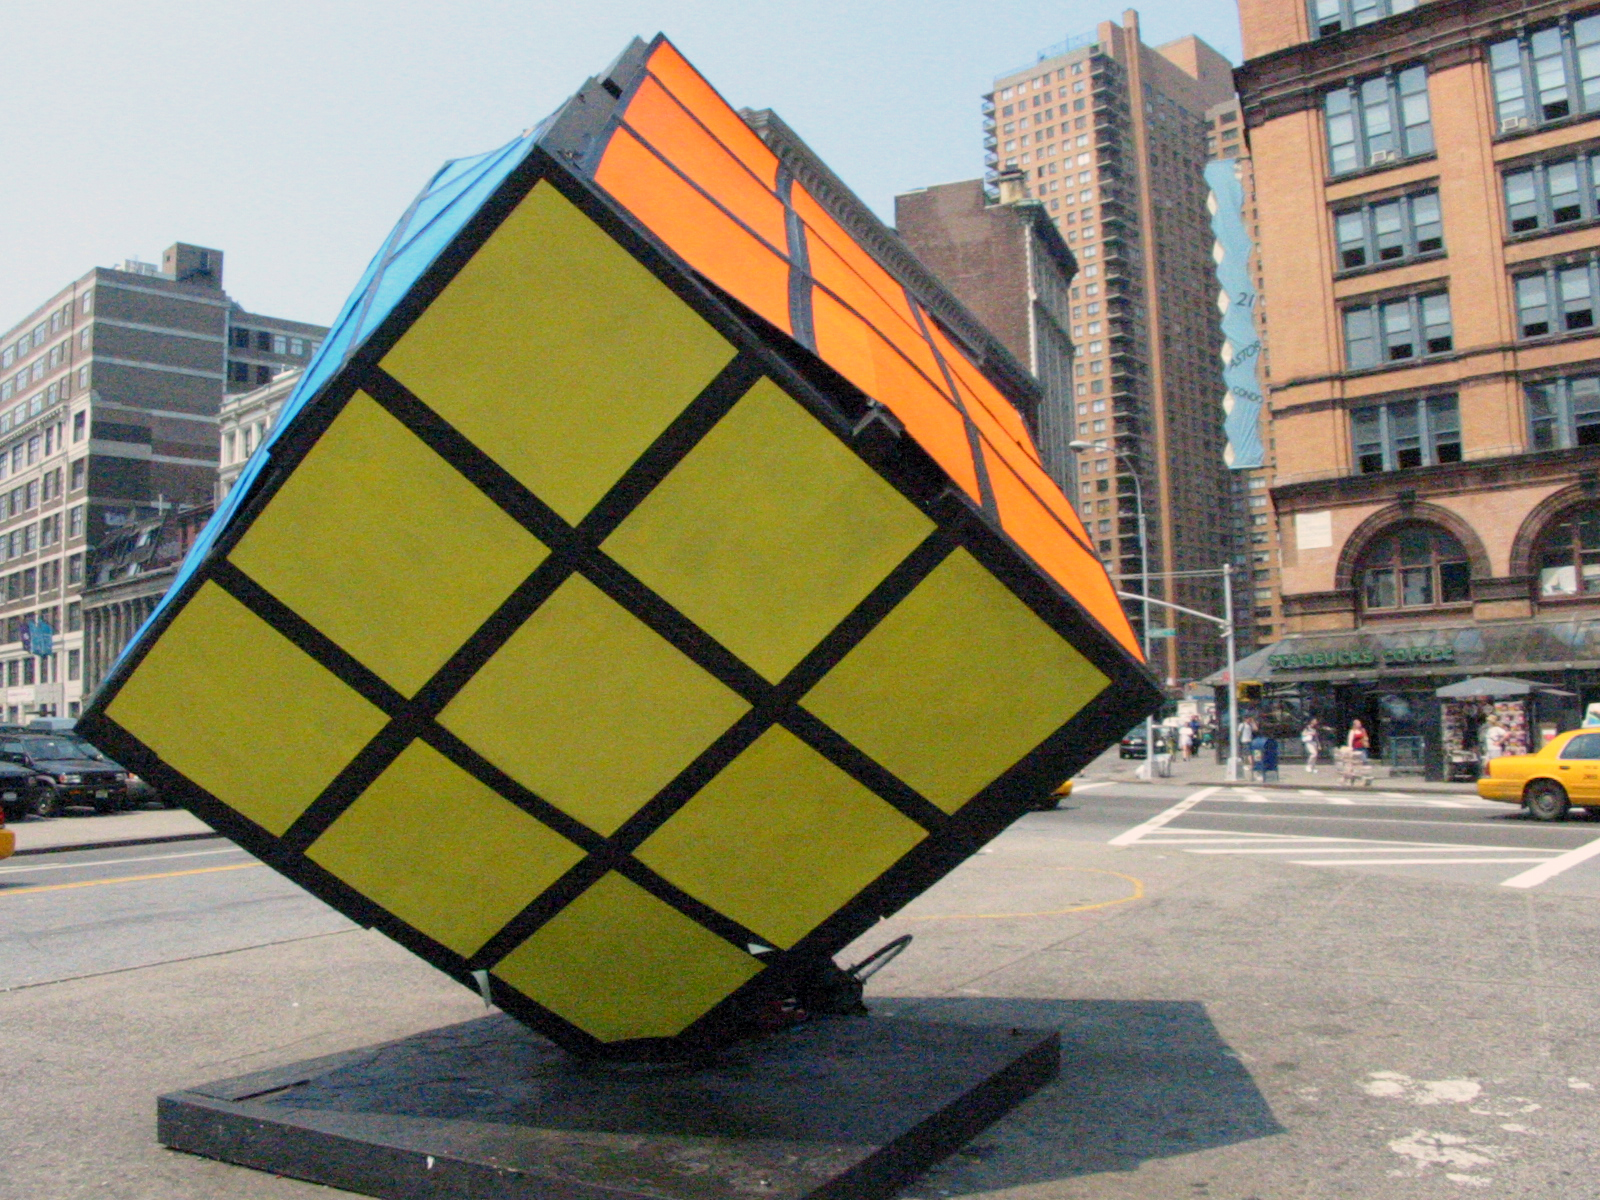 The Cube, Astor Place, New York City